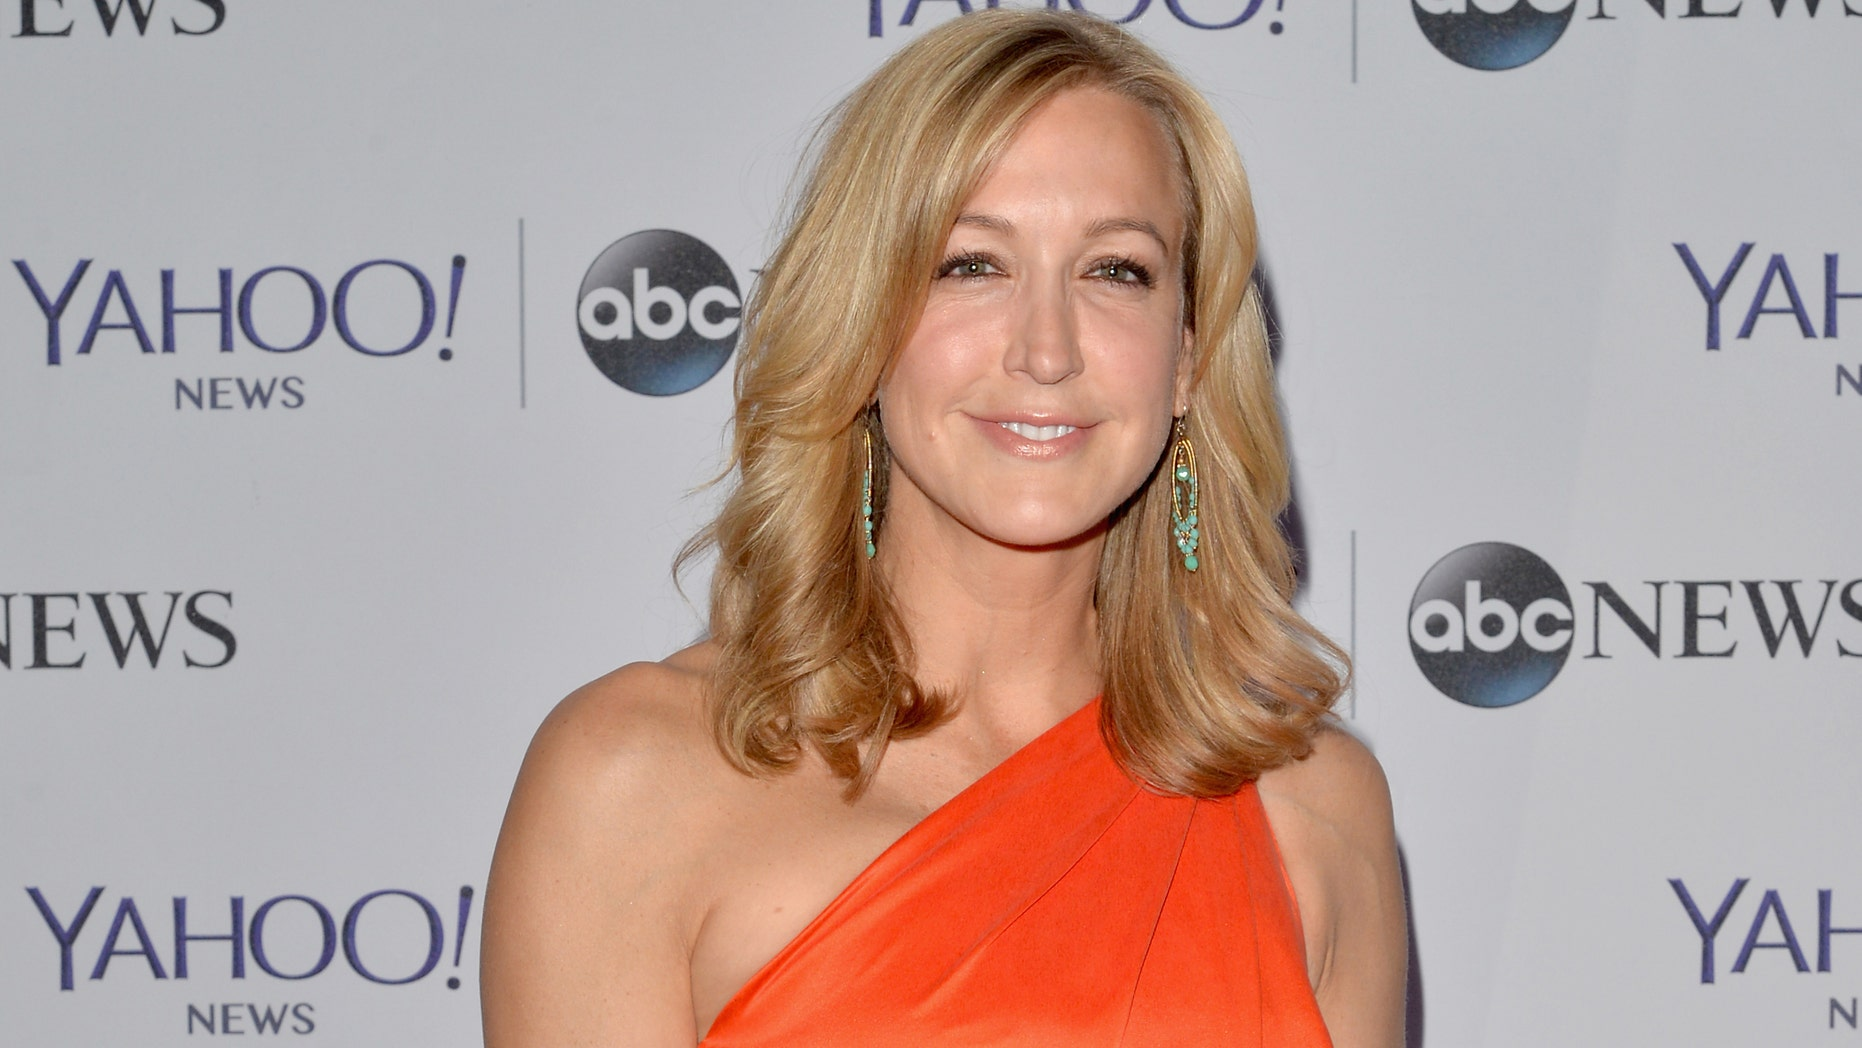 WASHINGTON, DC - MAY 03:  Lara Spencer attends the Yahoo News/ABCNews Pre-White House Correspondents' dinner reception pre-party at Washington Hilton on May 3, 2014 in Washington, DC.  (Photo by Andrew H. Walker/Getty Images for Yahoo News)